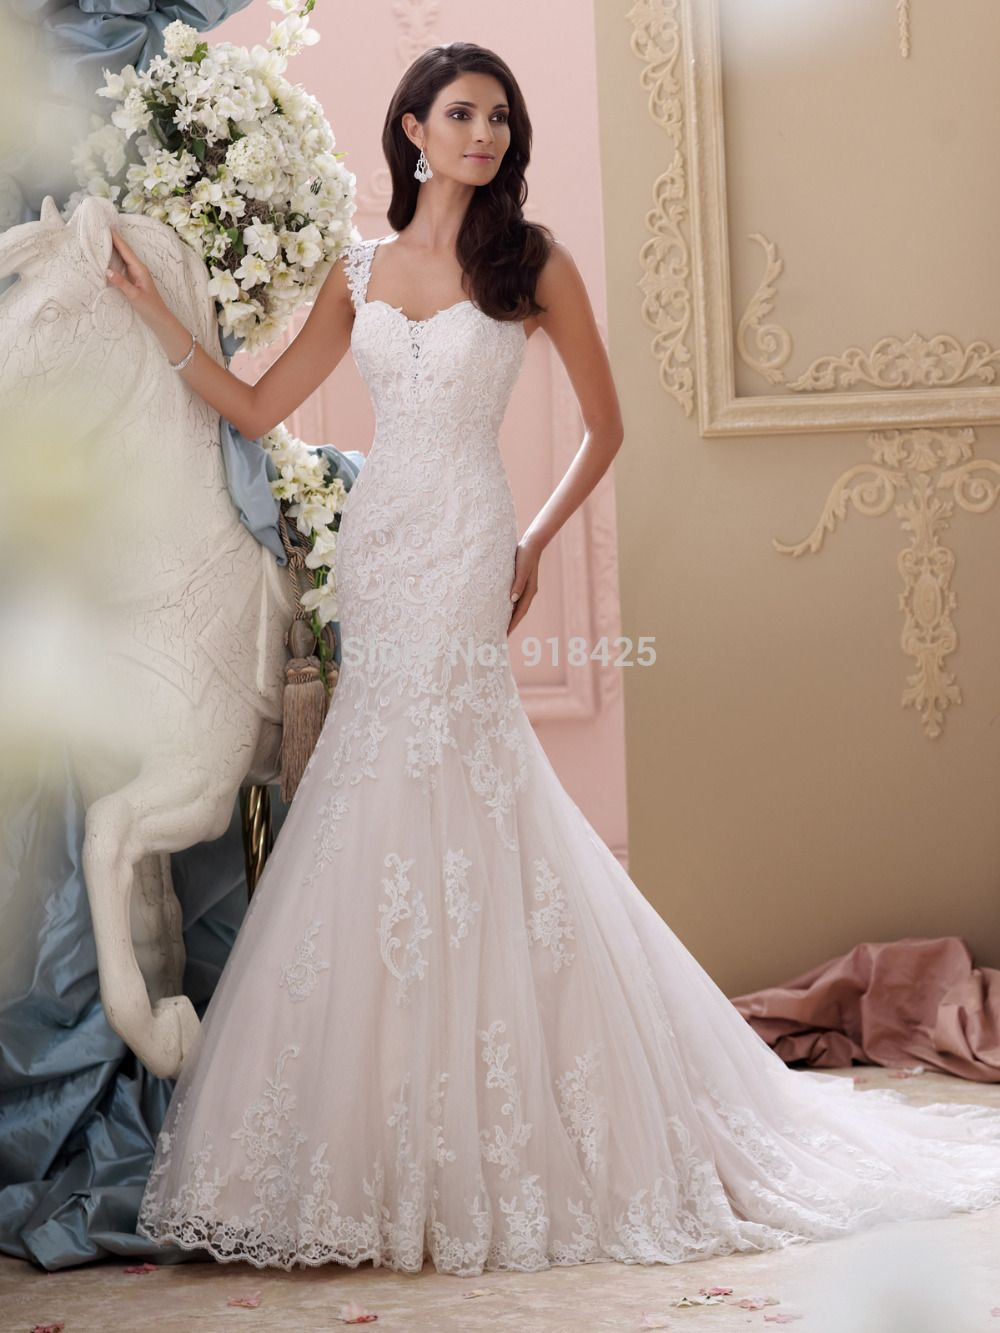 Lace wedding dress open back mermaid  Click to Buy ucuc Elegant Lace Open Back Wedding Dresses Sweetheart